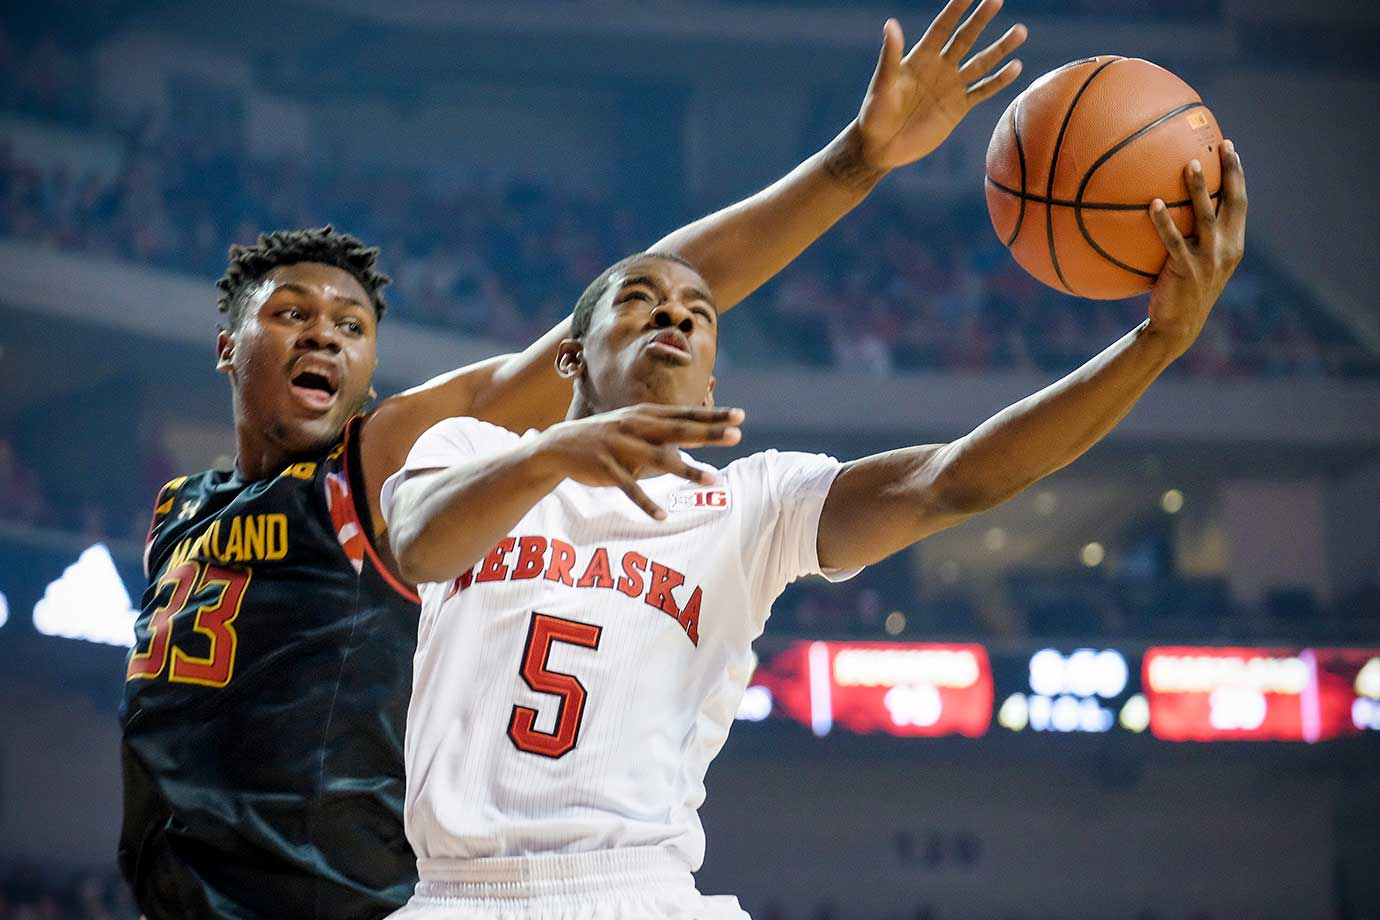 Glynn Watson Jr. of the Nebraska Cornhuskers drives to the basket past Diamond Stone of the Maryland Terrapins during their game at Pinnacle Bank Arena in Omaha.